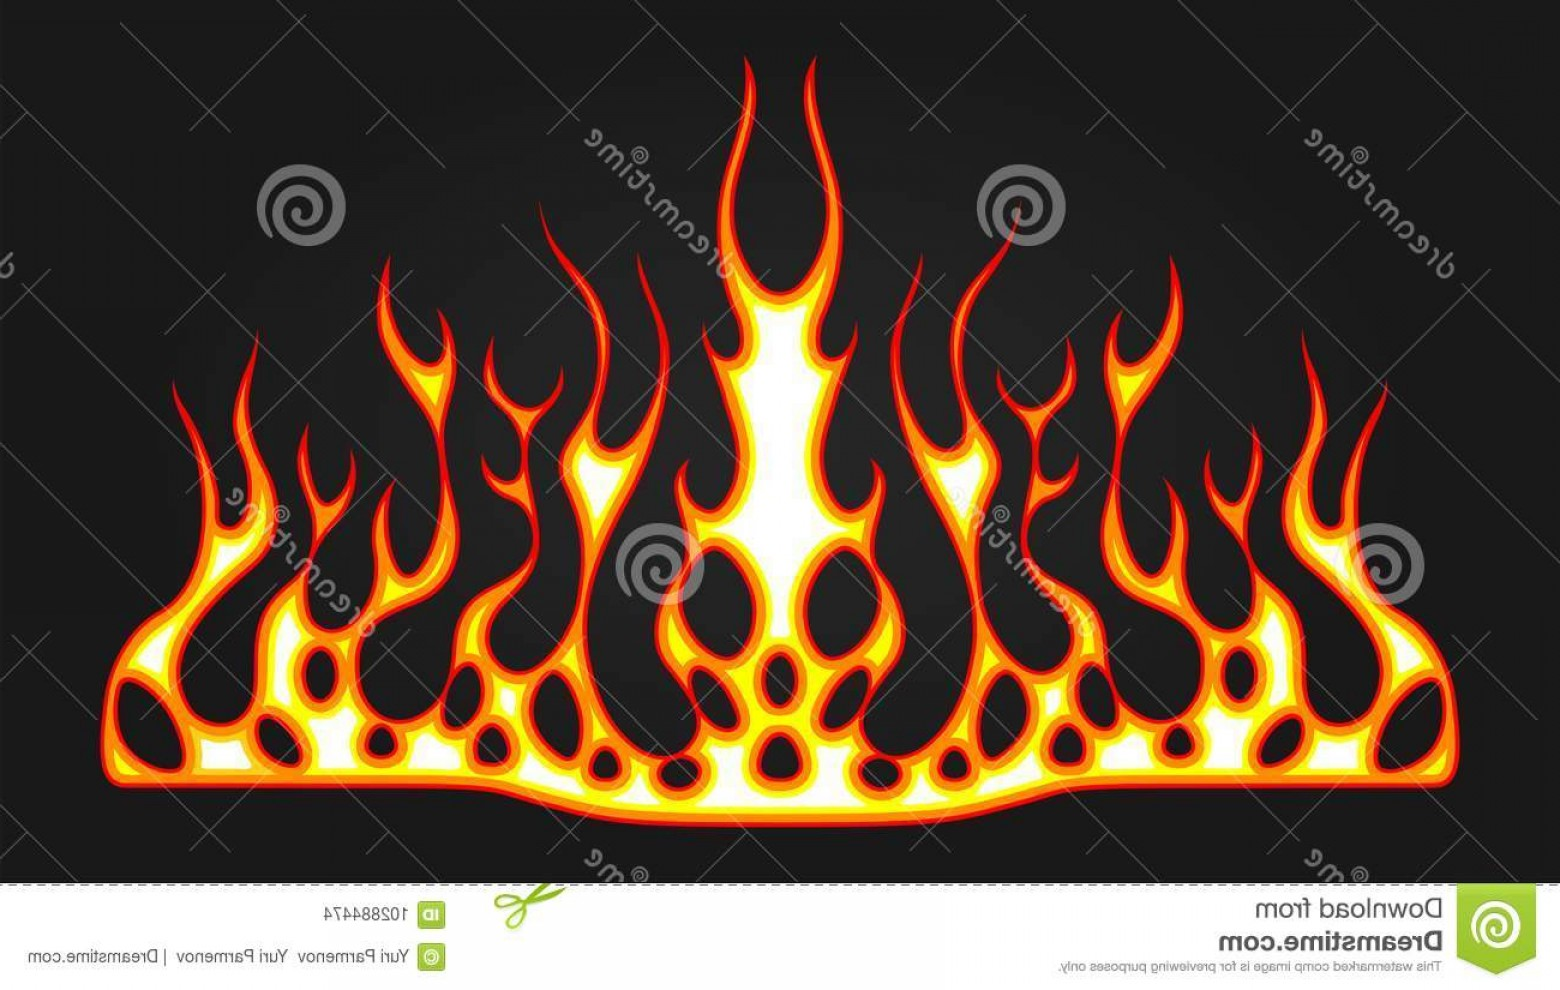 Tribal Flames Vector Car: Blazing Fire Decals Hood Car Hot Rod Racing Flames Vinyl Ready Tribal Flames Vehicle Motorbike Stickers Image